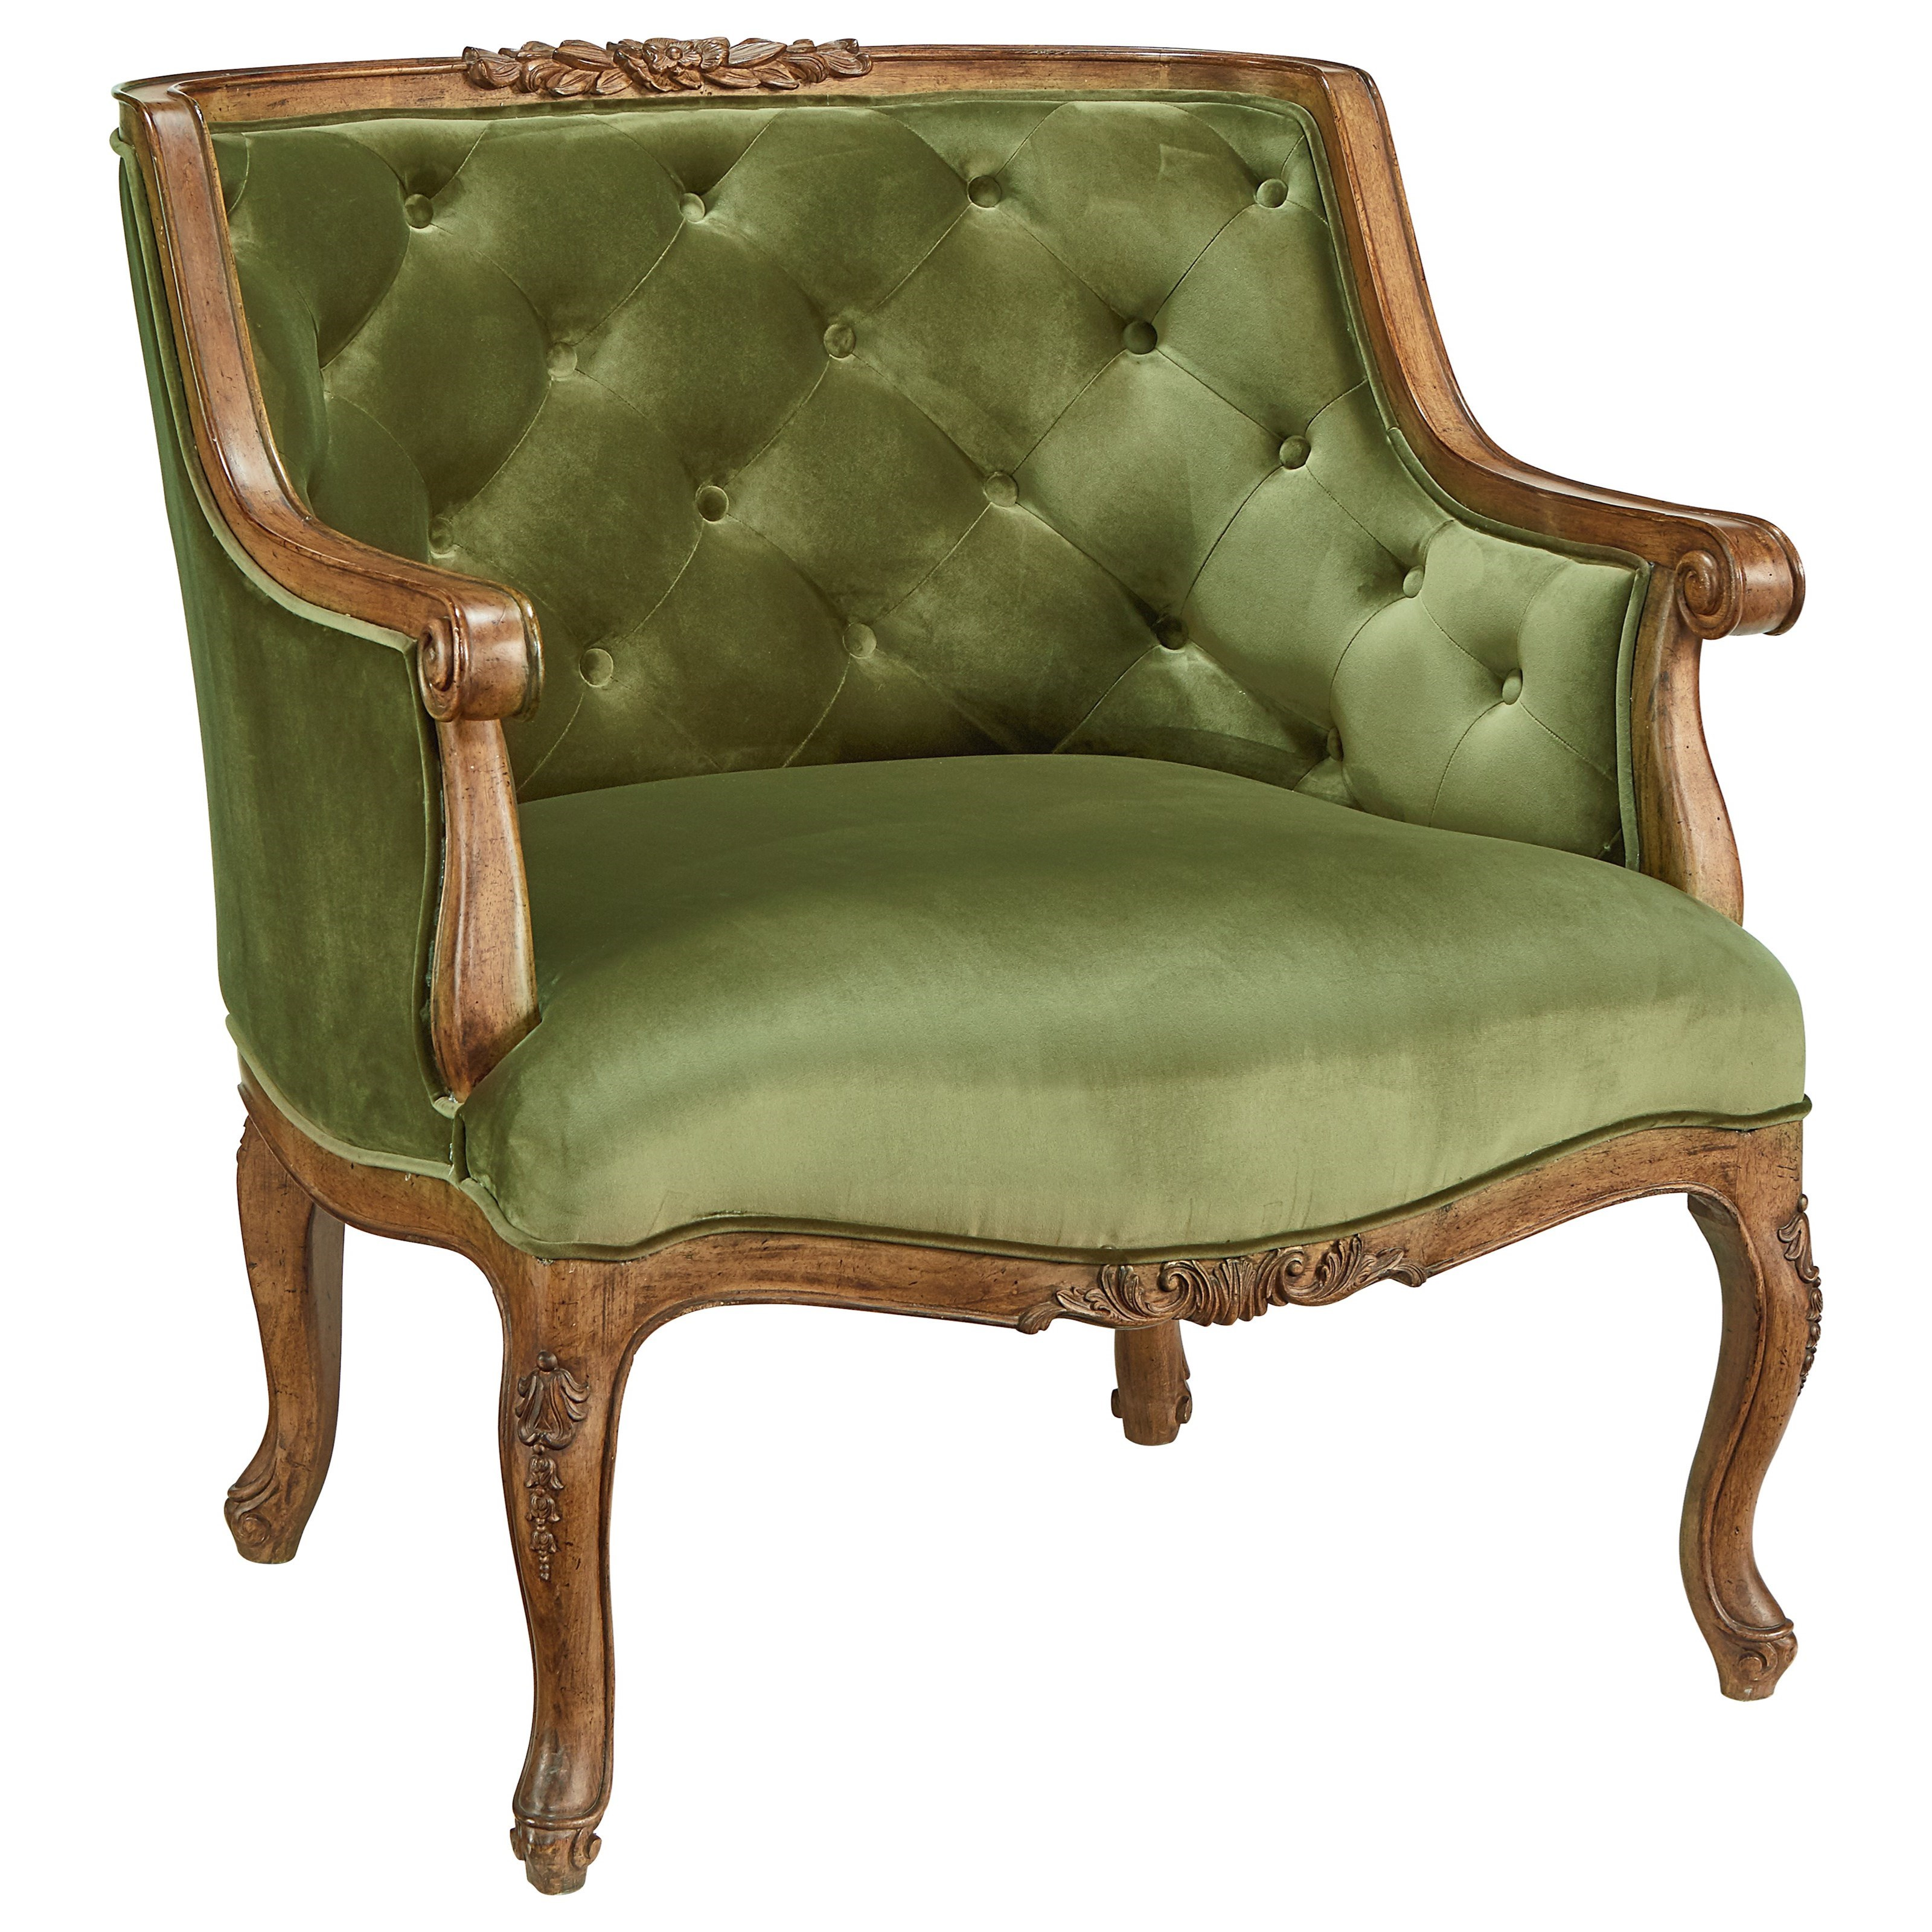 Magnolia Home by Joanna Gaines Accent Chair Upholstered Chair - Item Number: 80612040